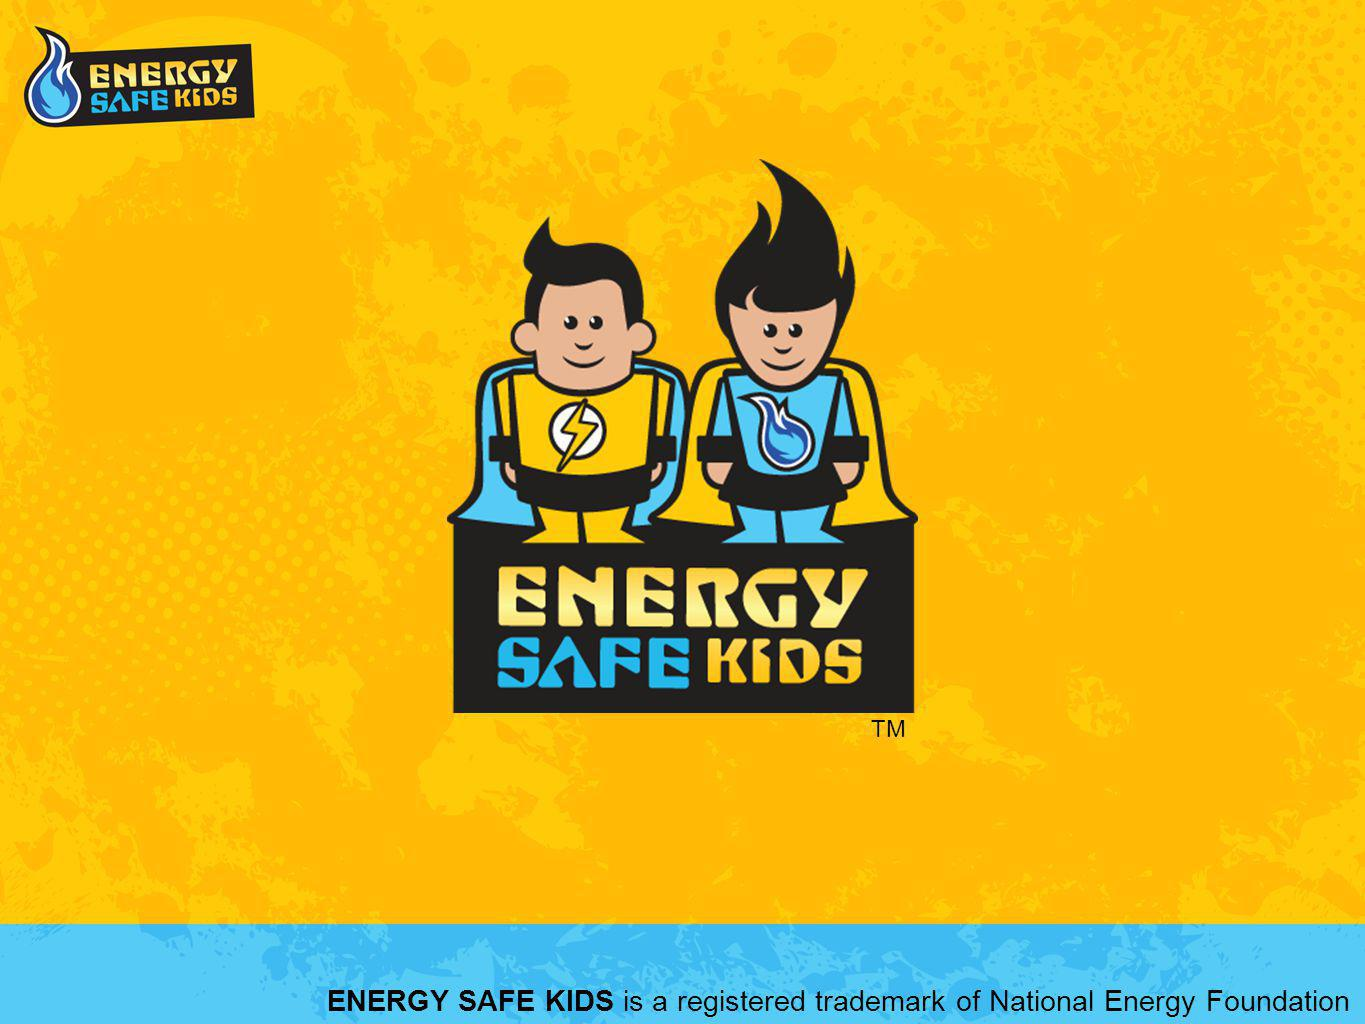 ENERGY SAFE KIDS is a registered trademark of National Energy Foundation TM